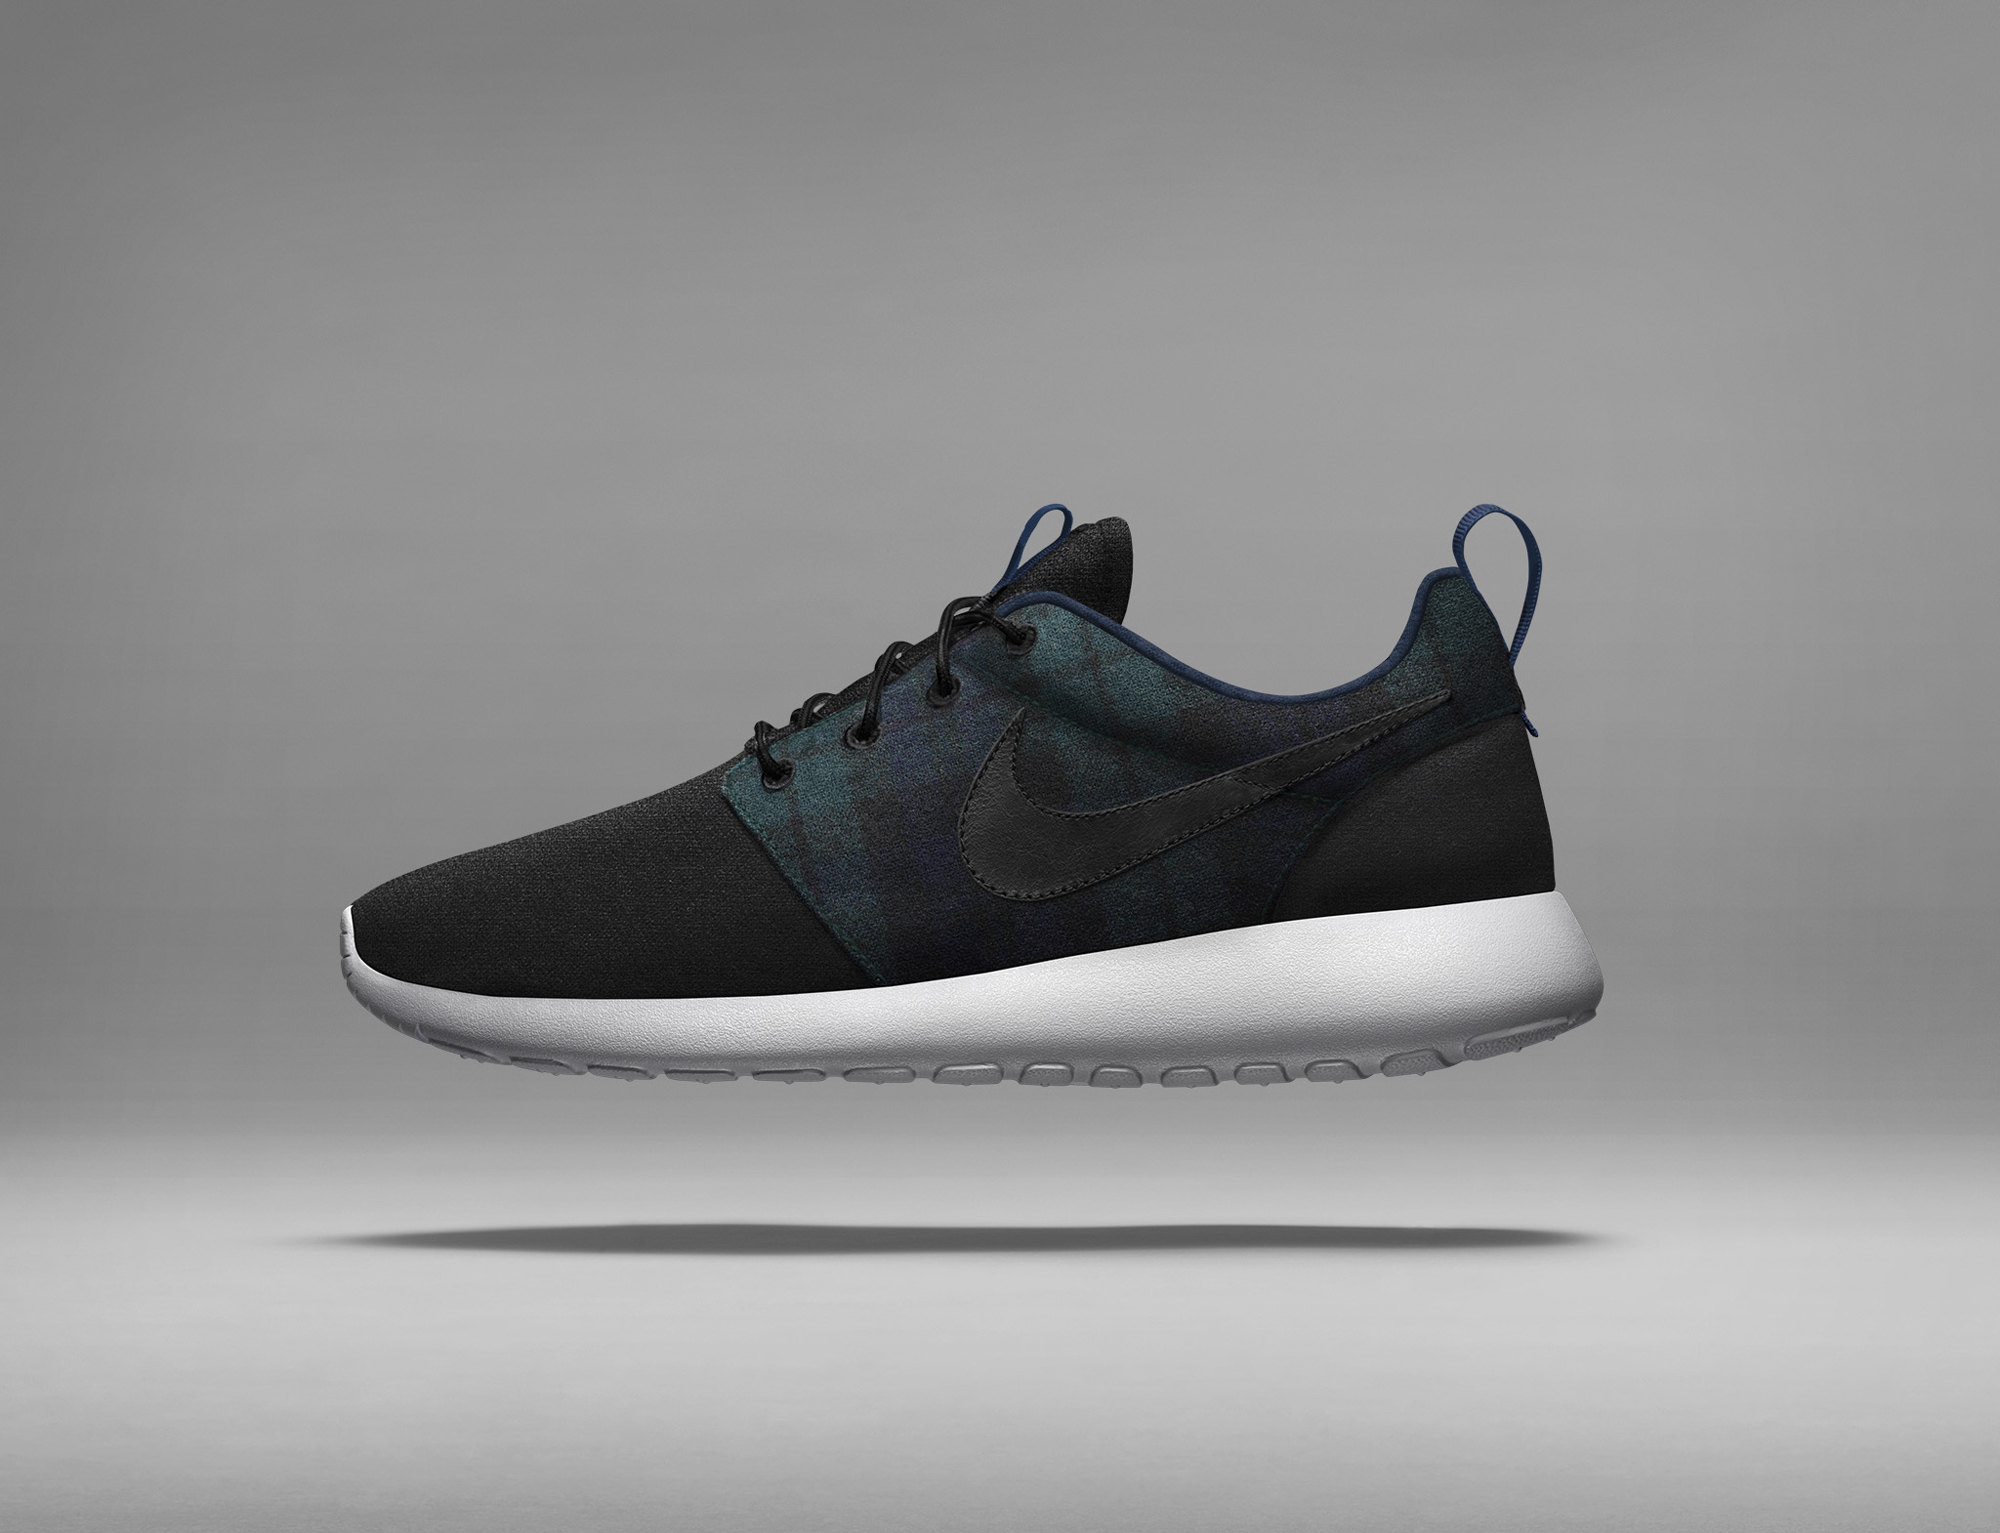 354181e1a0ca Roshe Run Oreo Speckled For Sale - Musée des impressionnismes Giverny